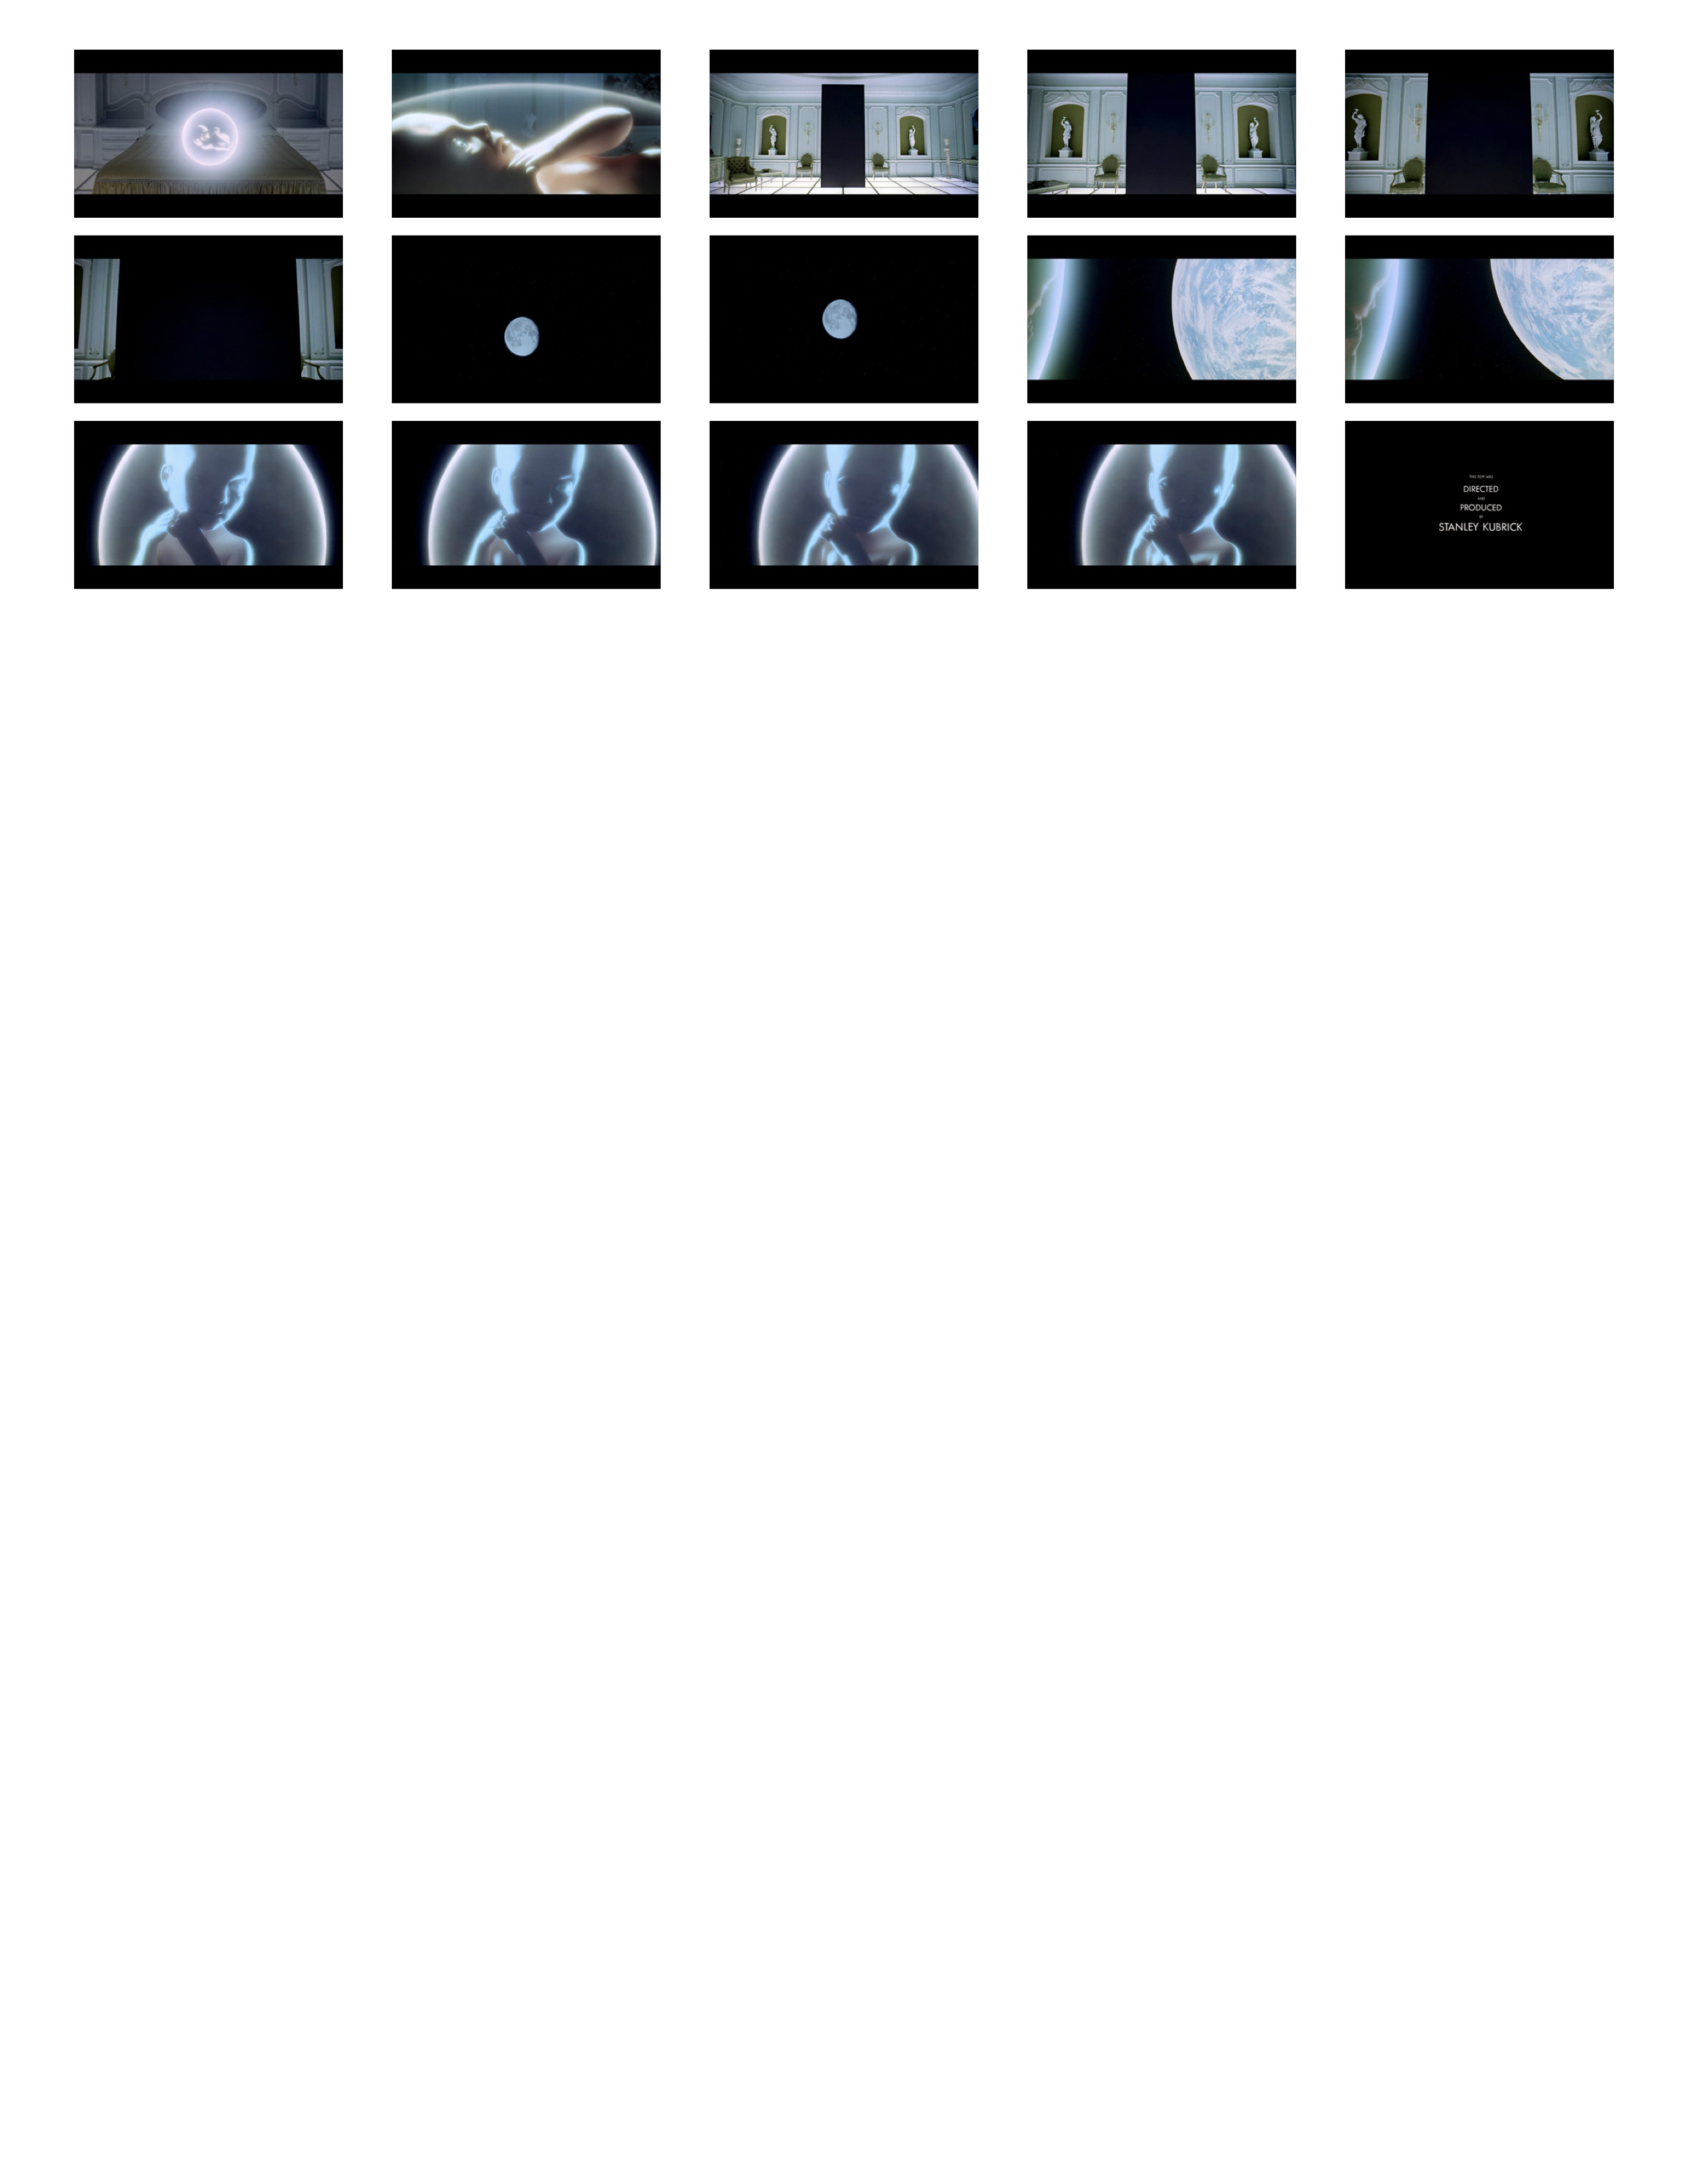 2001 Space Odyssey Cinematography - contact sheets-18